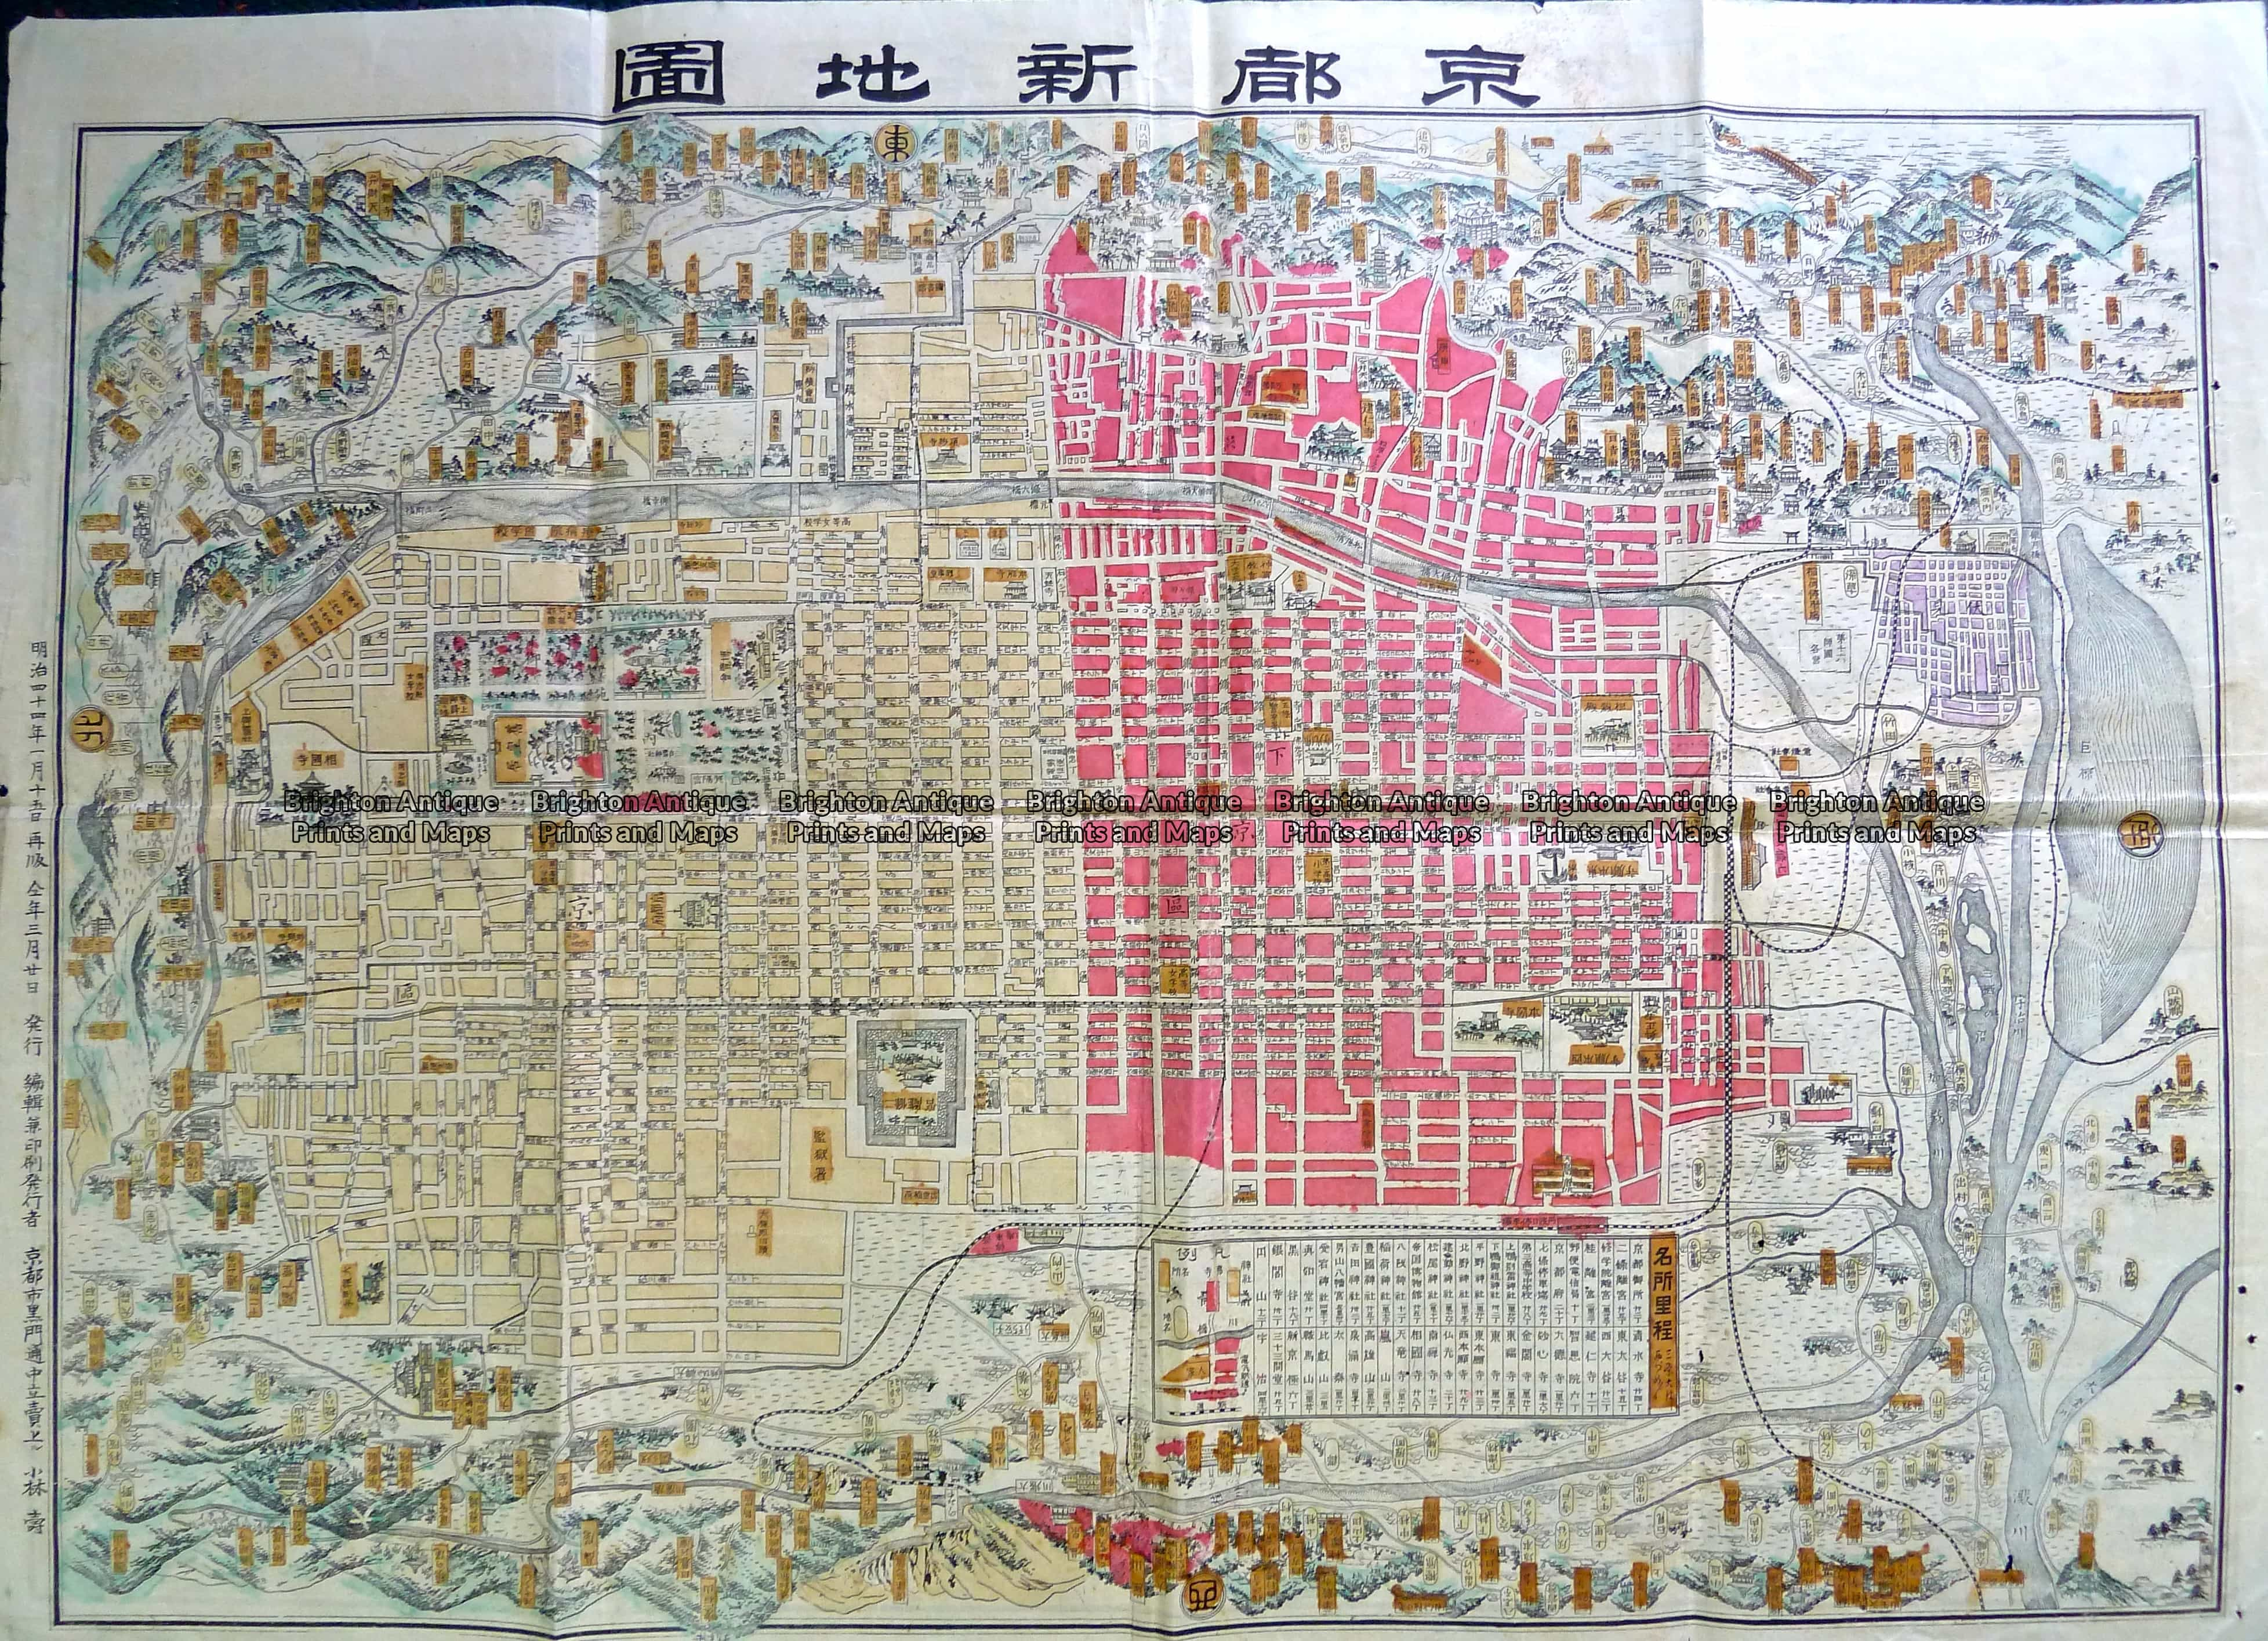 2143 Kyoto street map c1900 Brighton Antique Maps and Prints